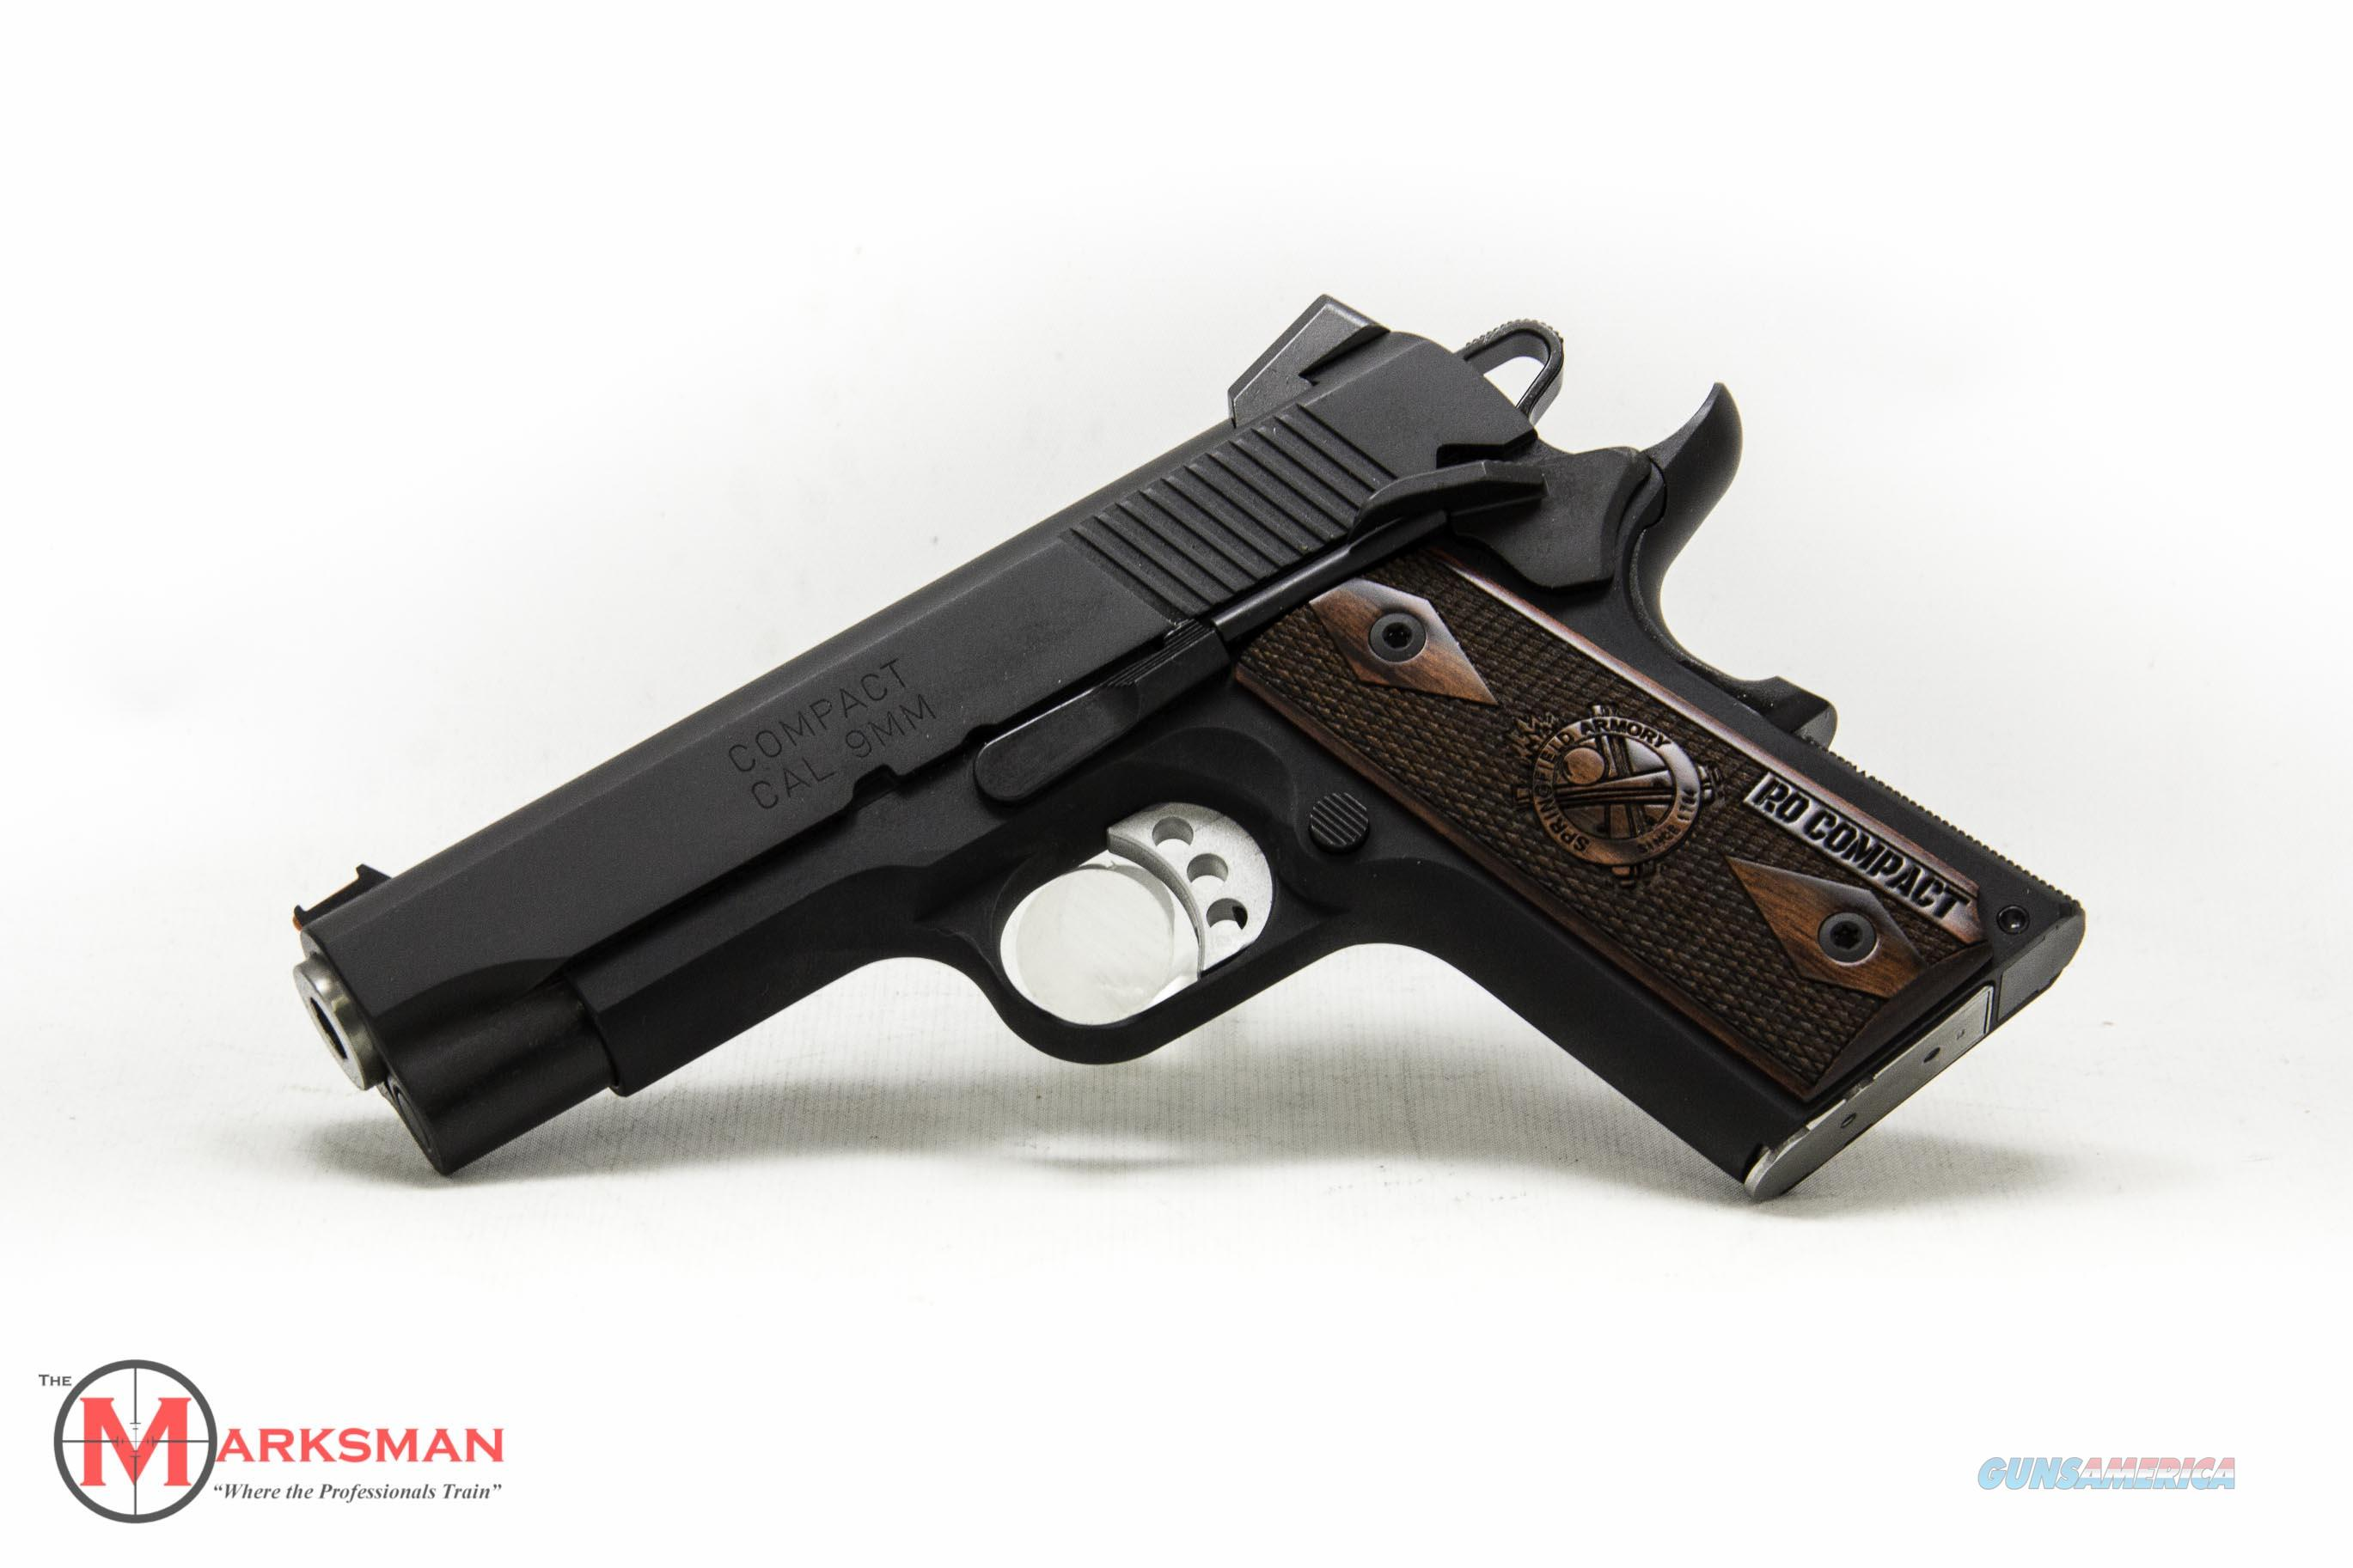 Springfield Range Officer Lightweight Compact, 9mm NEW  Guns > Pistols > Springfield Armory Pistols > 1911 Type